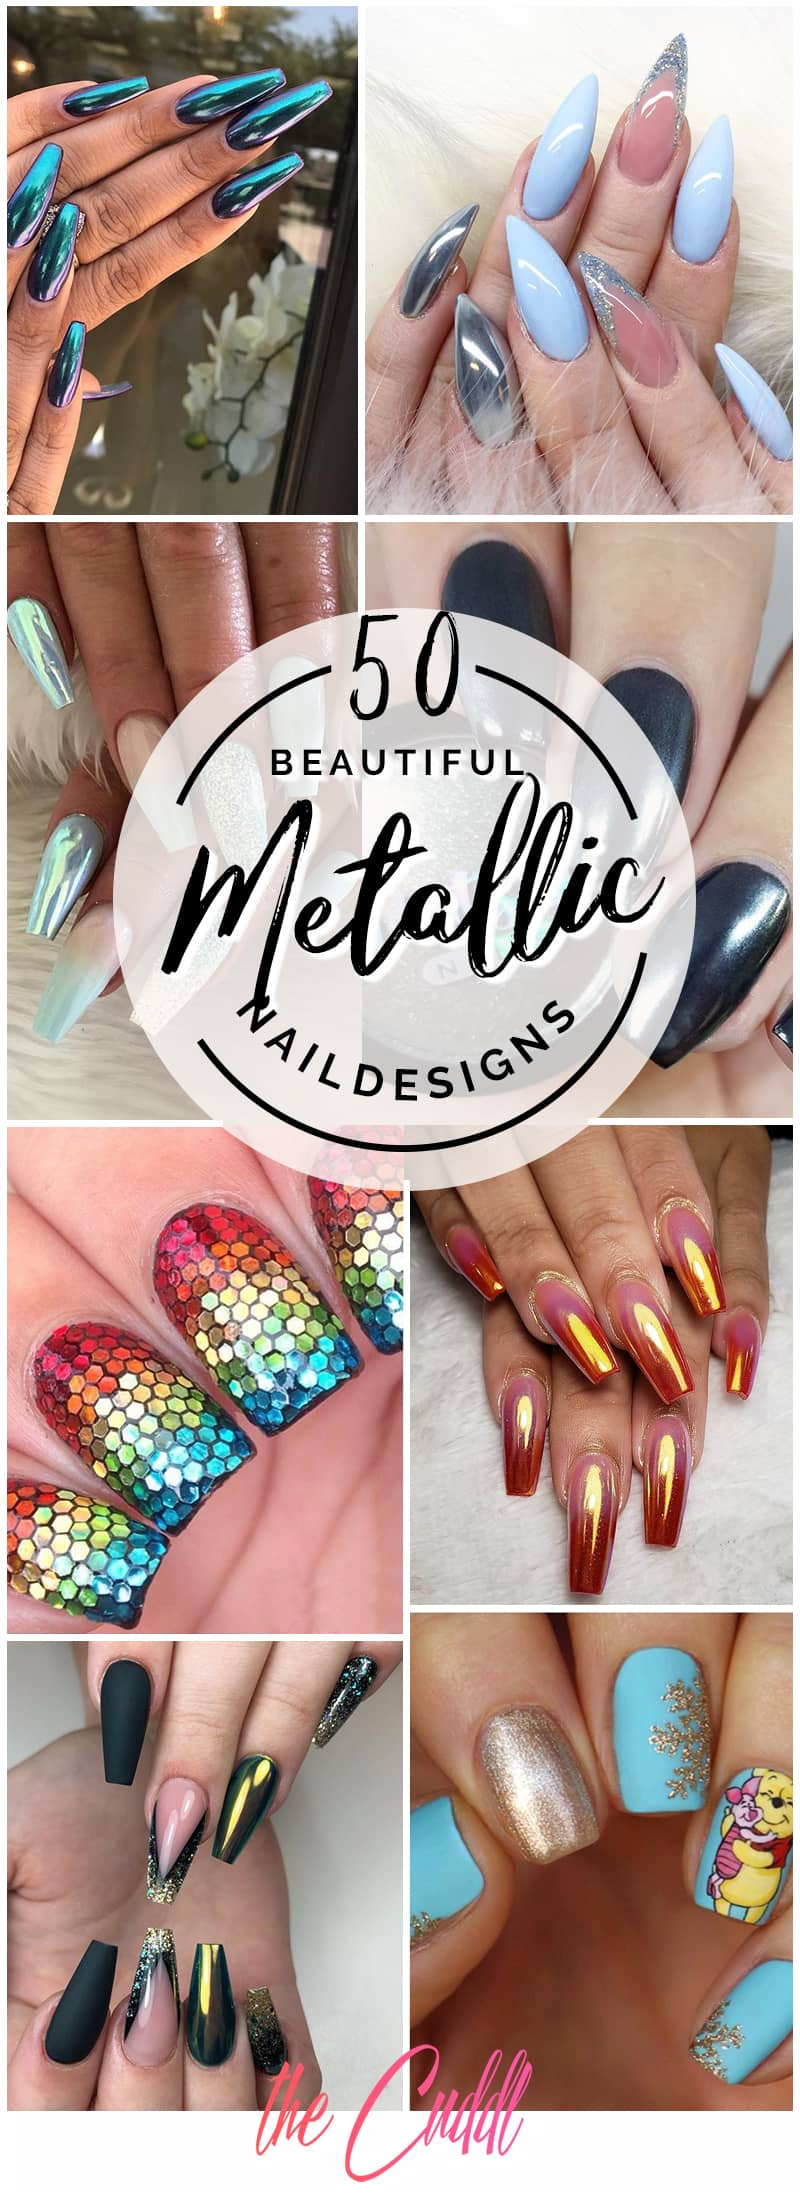 50 Gorgeous Metallic Nail Designs That Are Incredibly Envy and Instagram-Worthy